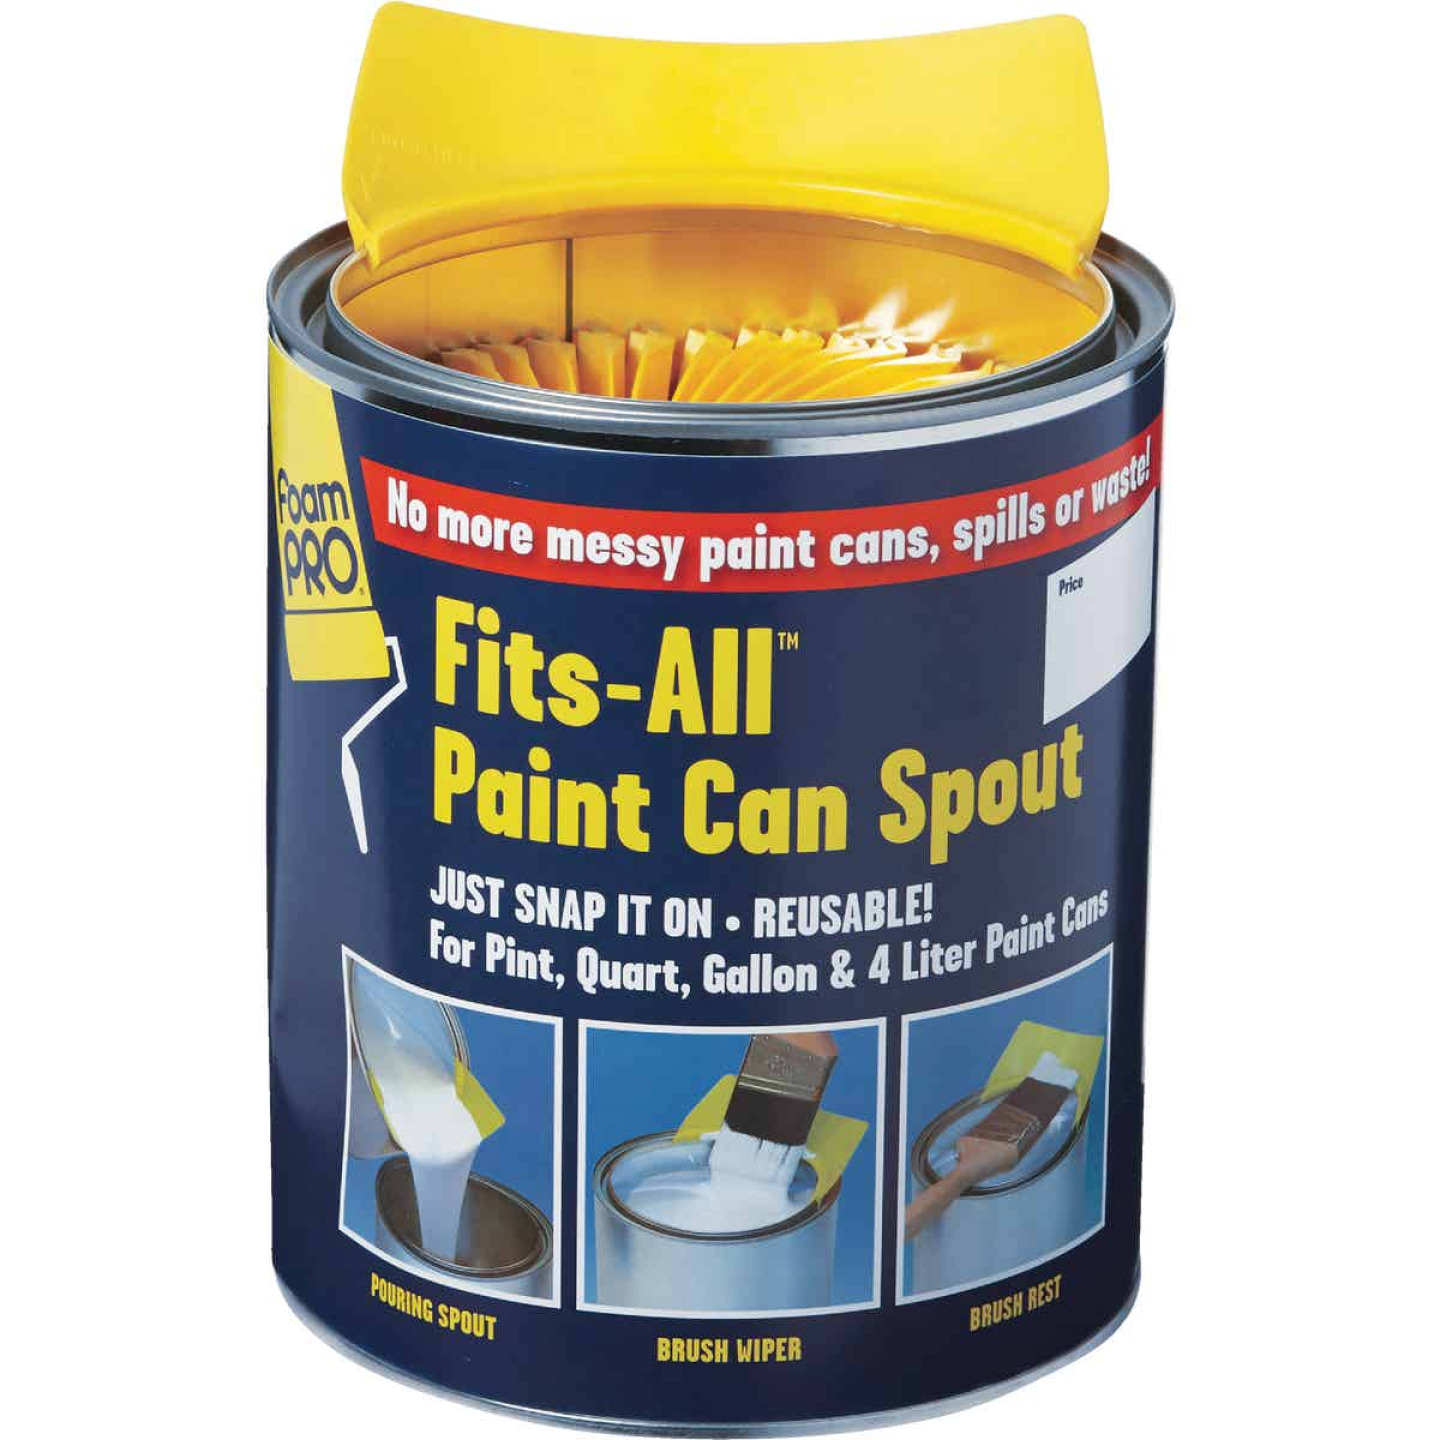 FoamPro Fits-All Snap-On Paint Can Pourer Image 4